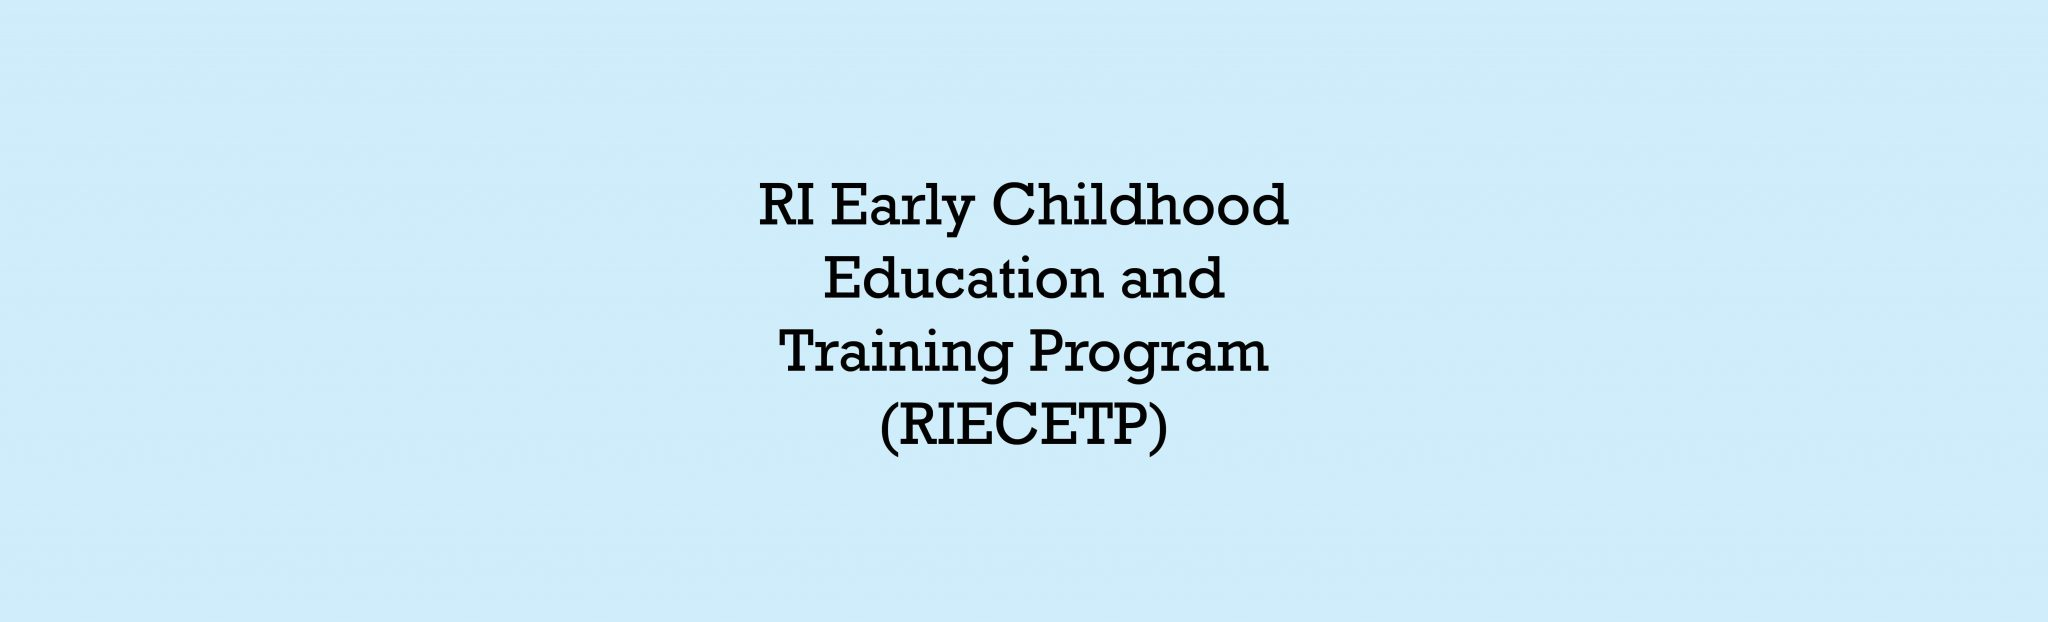 R.I. Early Childhood Education and Training Program  (RIECETP) Grant